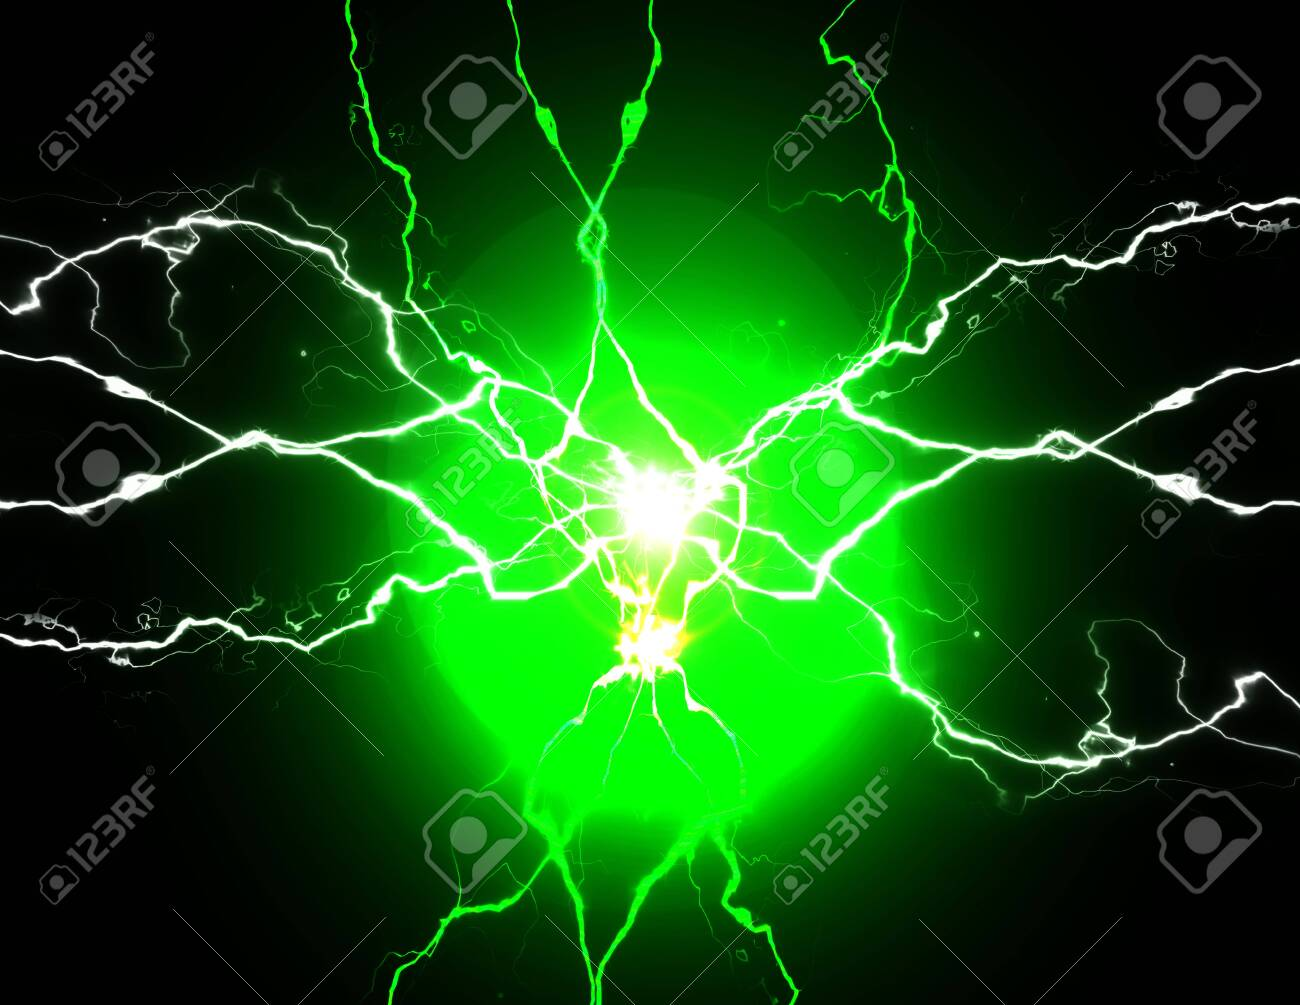 Green energy with electrical electricy plasma power crackling fusion bolts - 144804119